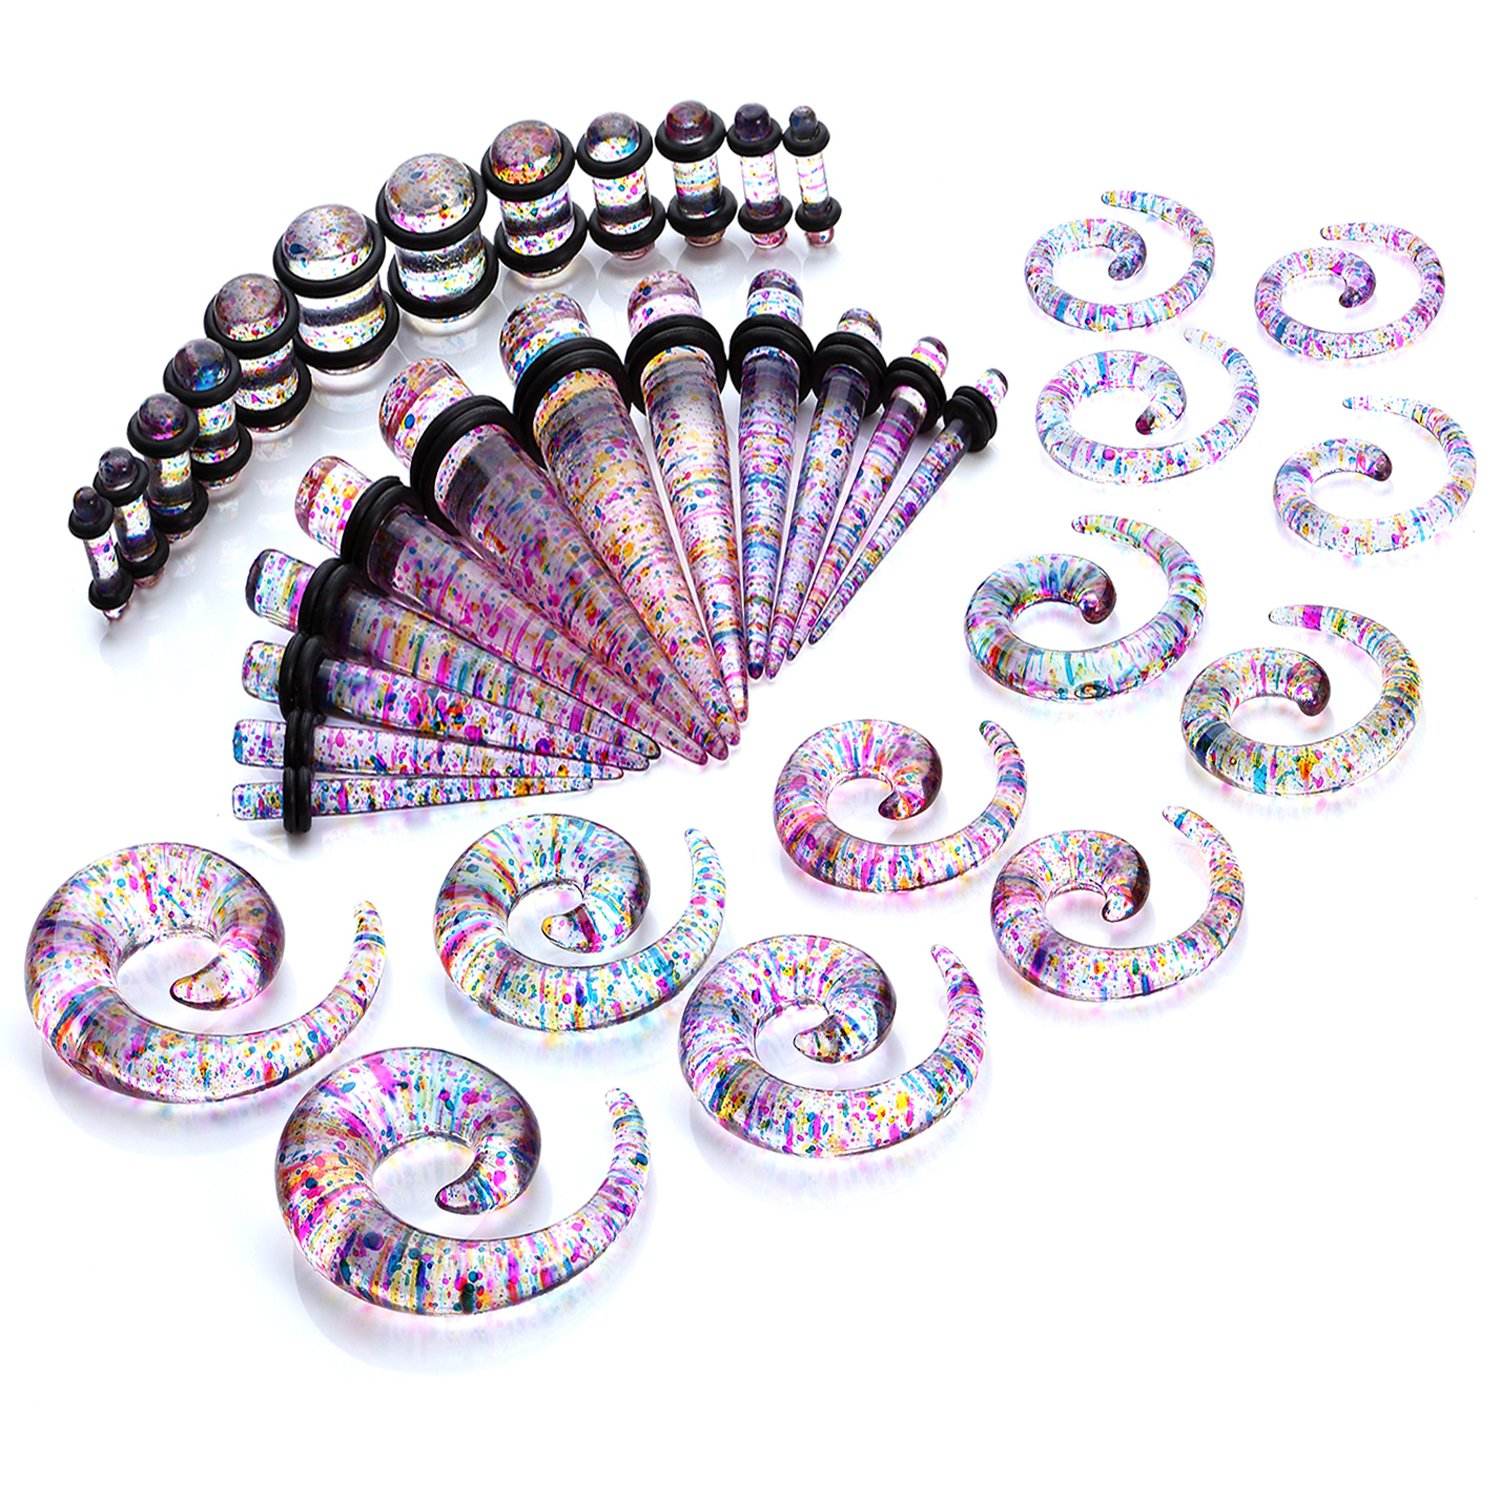 BodyJ4You Gauges Kit Tie Dye Spiral Tapers and Plugs 8G-00G Stretching Kit -18 Pairs